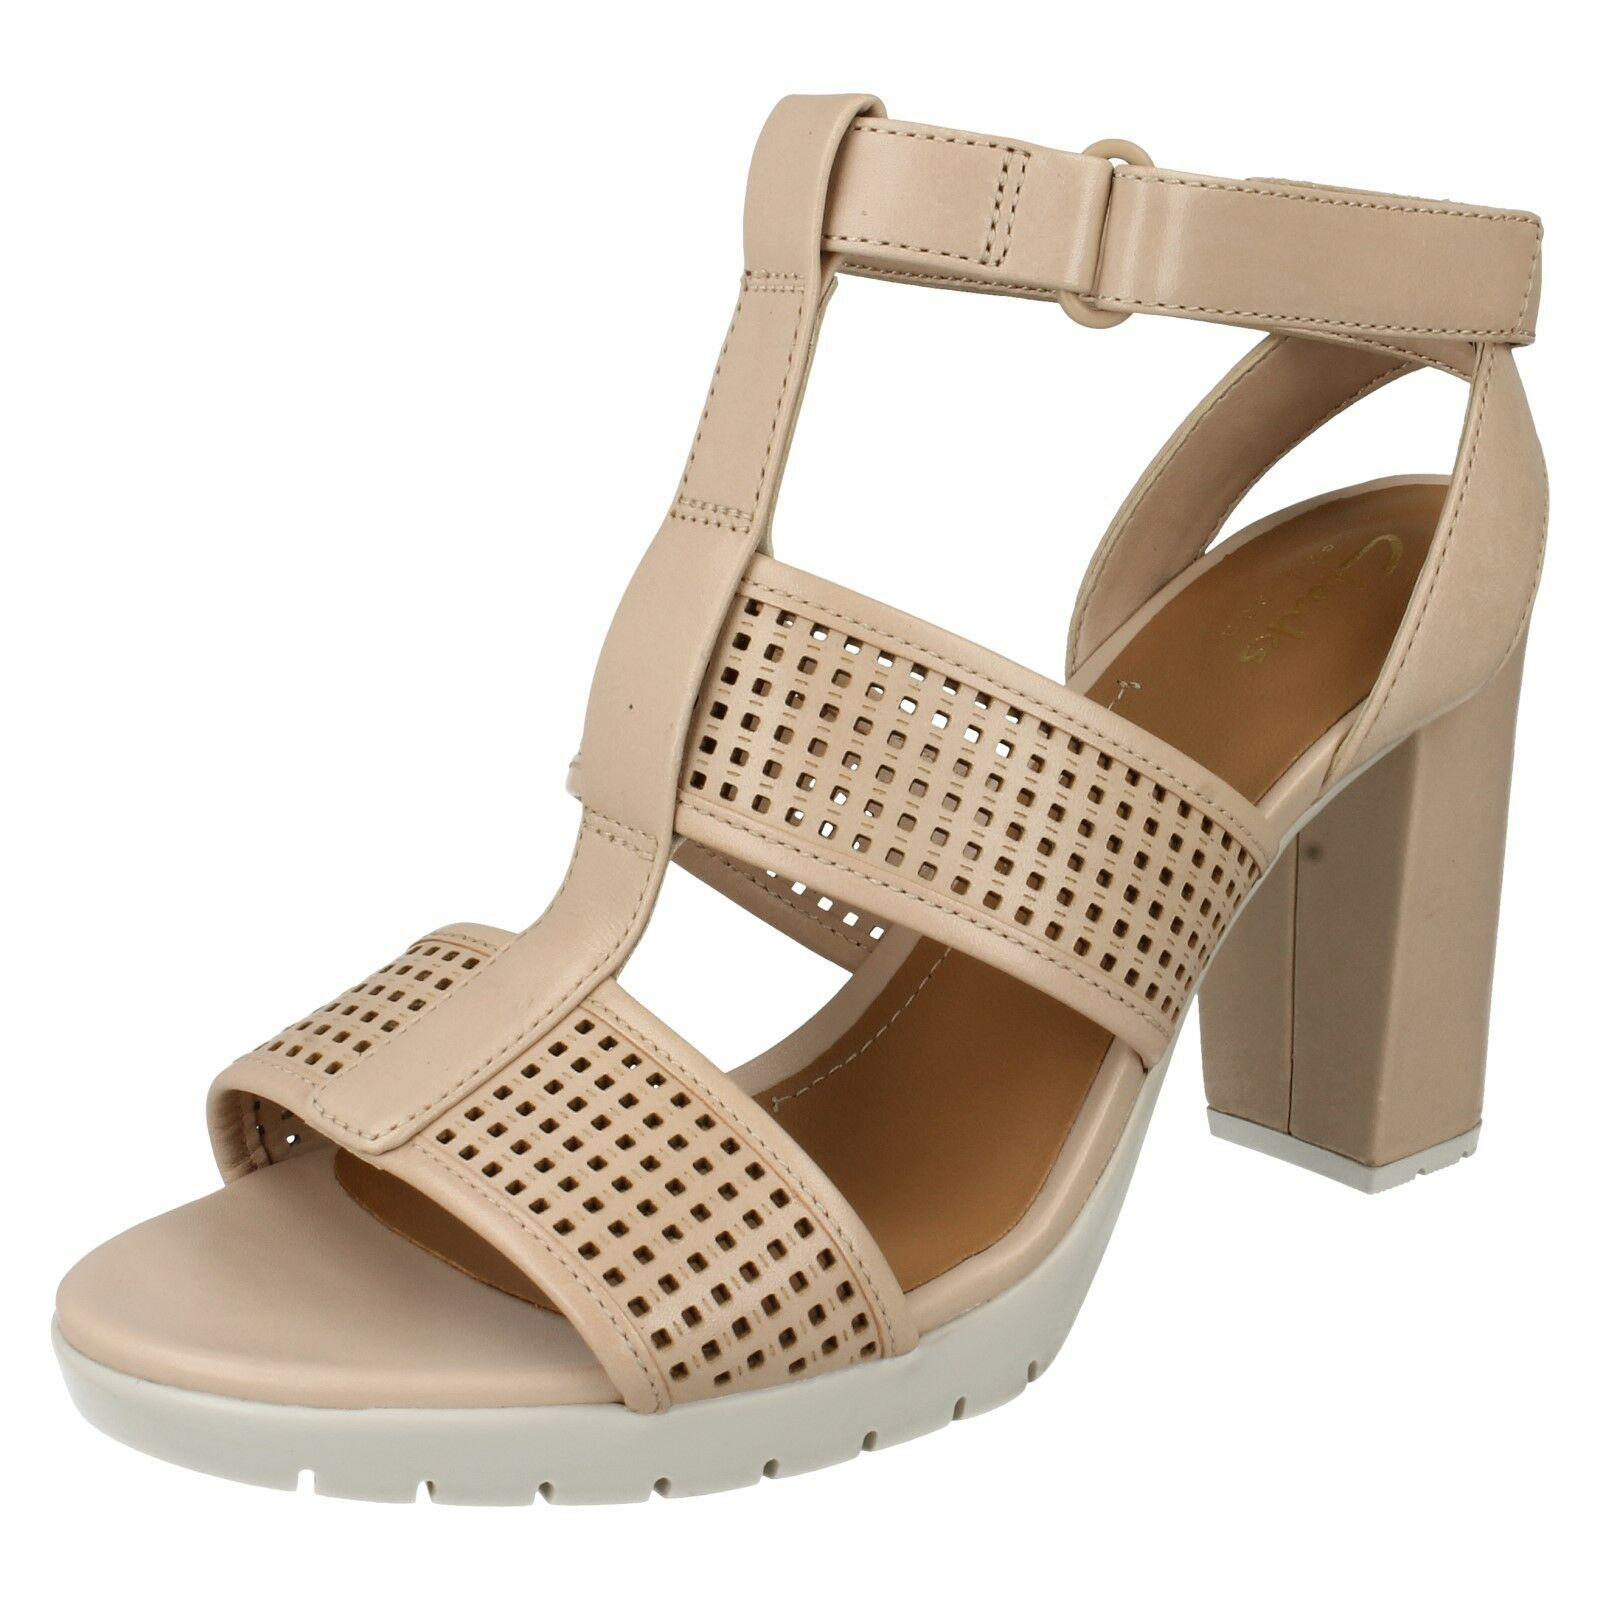 PASTINA CASTLE LADIES BAR CLARKS RIPTAPE T BAR LADIES LEATHER HEELED SMART OPEN TOE SANDALS d65f39